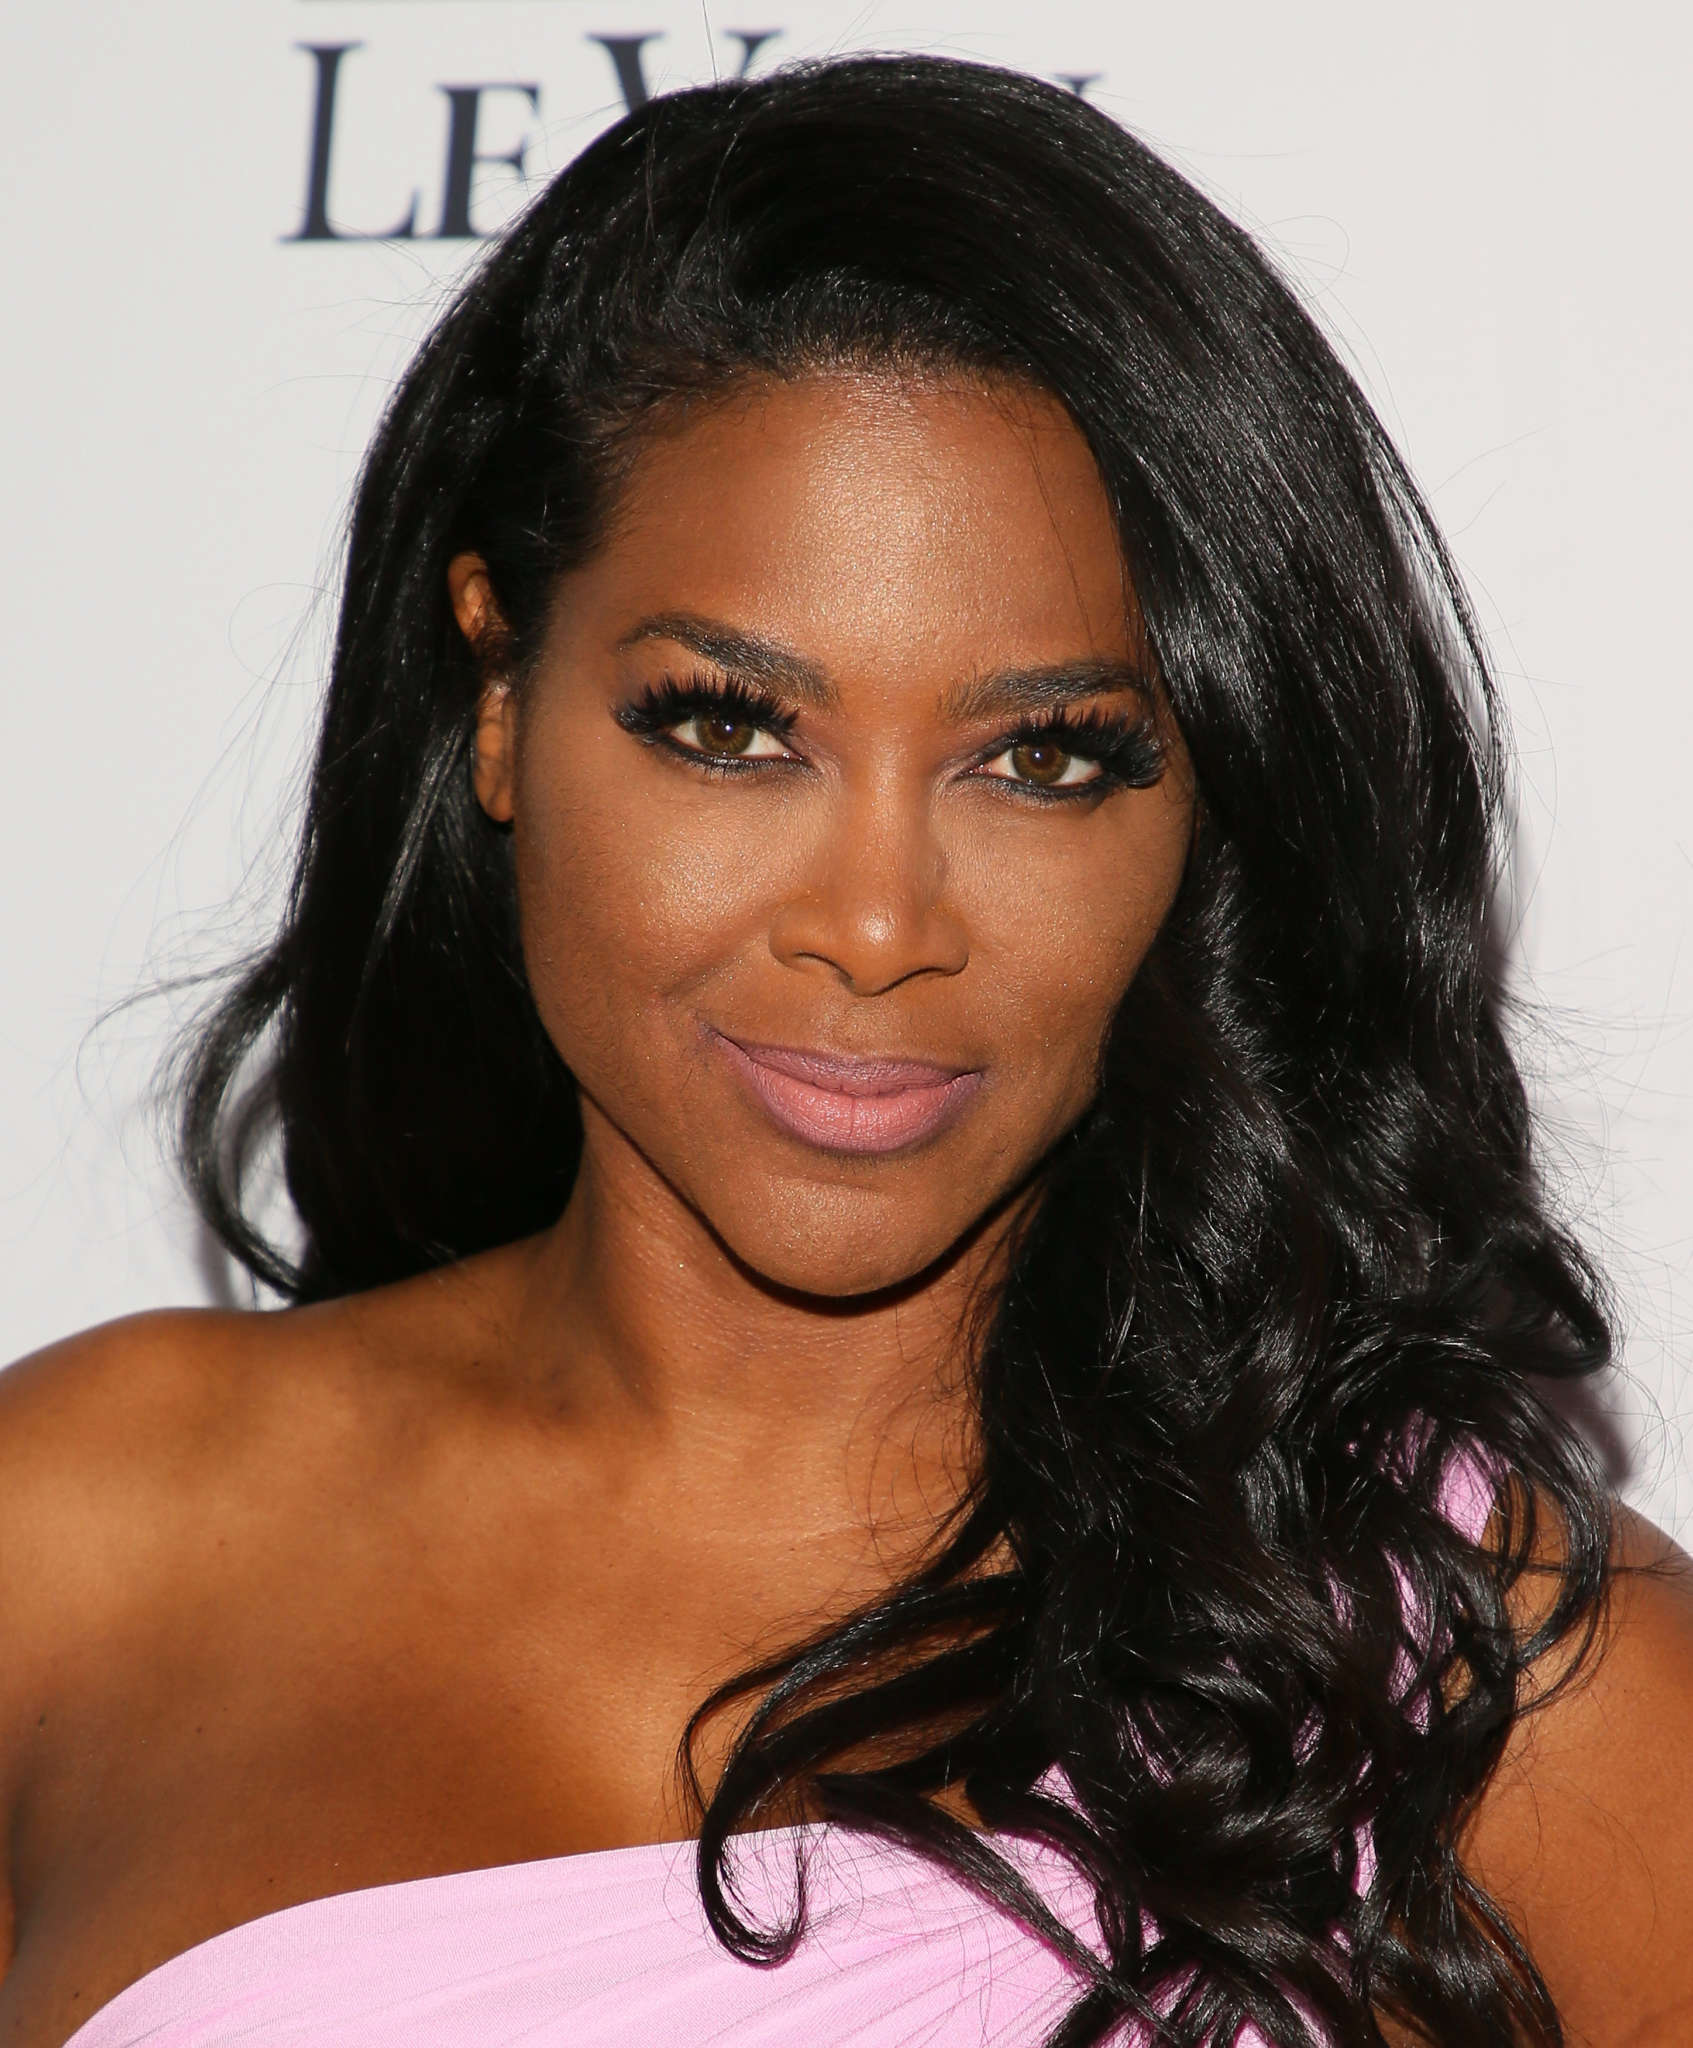 Kenya Moore Reveals Fans Her Secret For Slimming Down And Looking Her Best